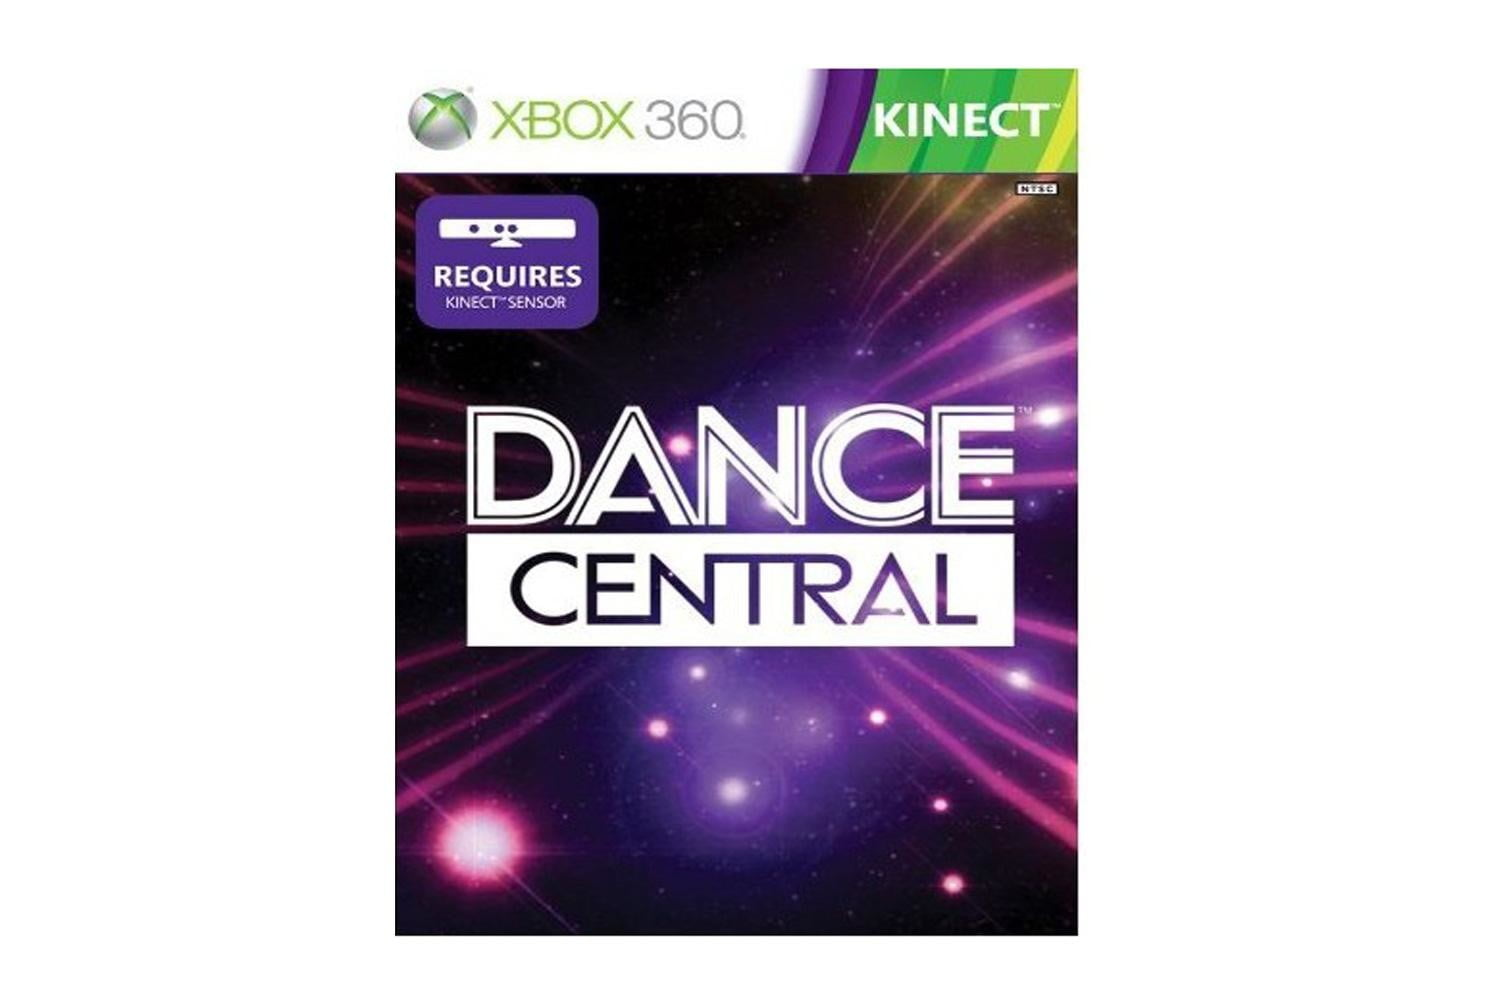 Dance-Central-cover-art